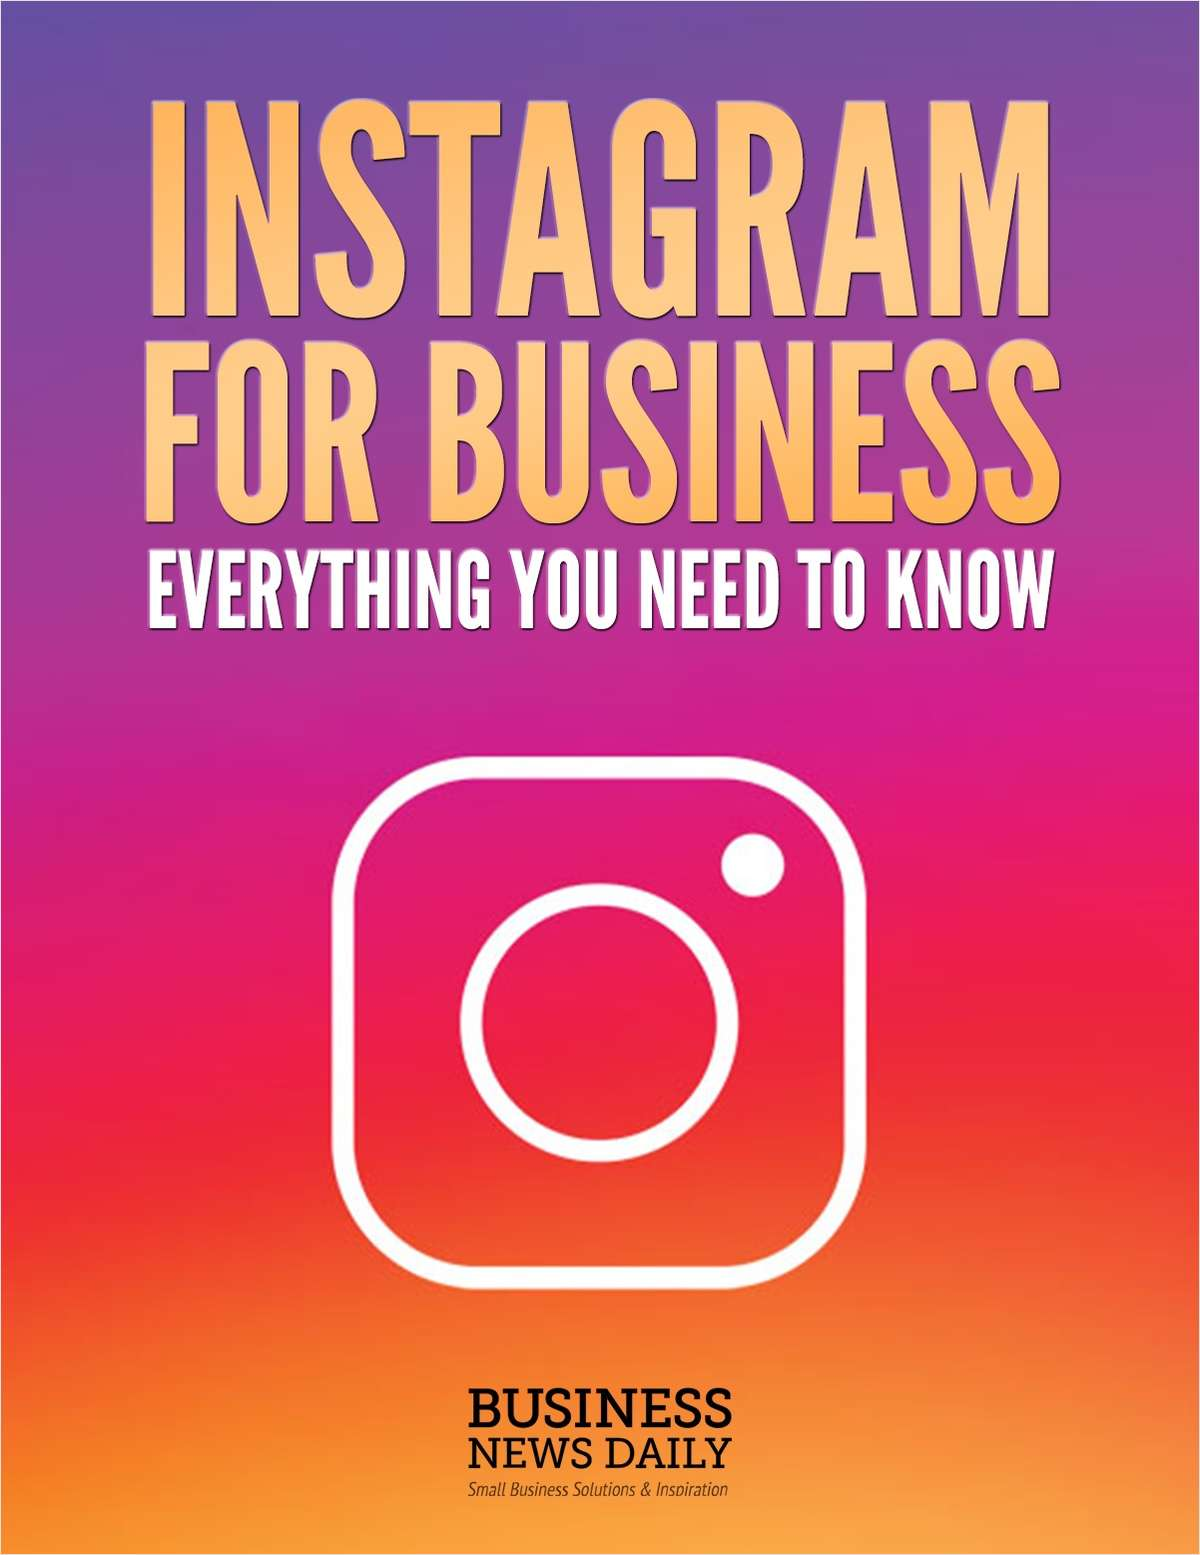 Instagram for Business - Everything You Need to Know